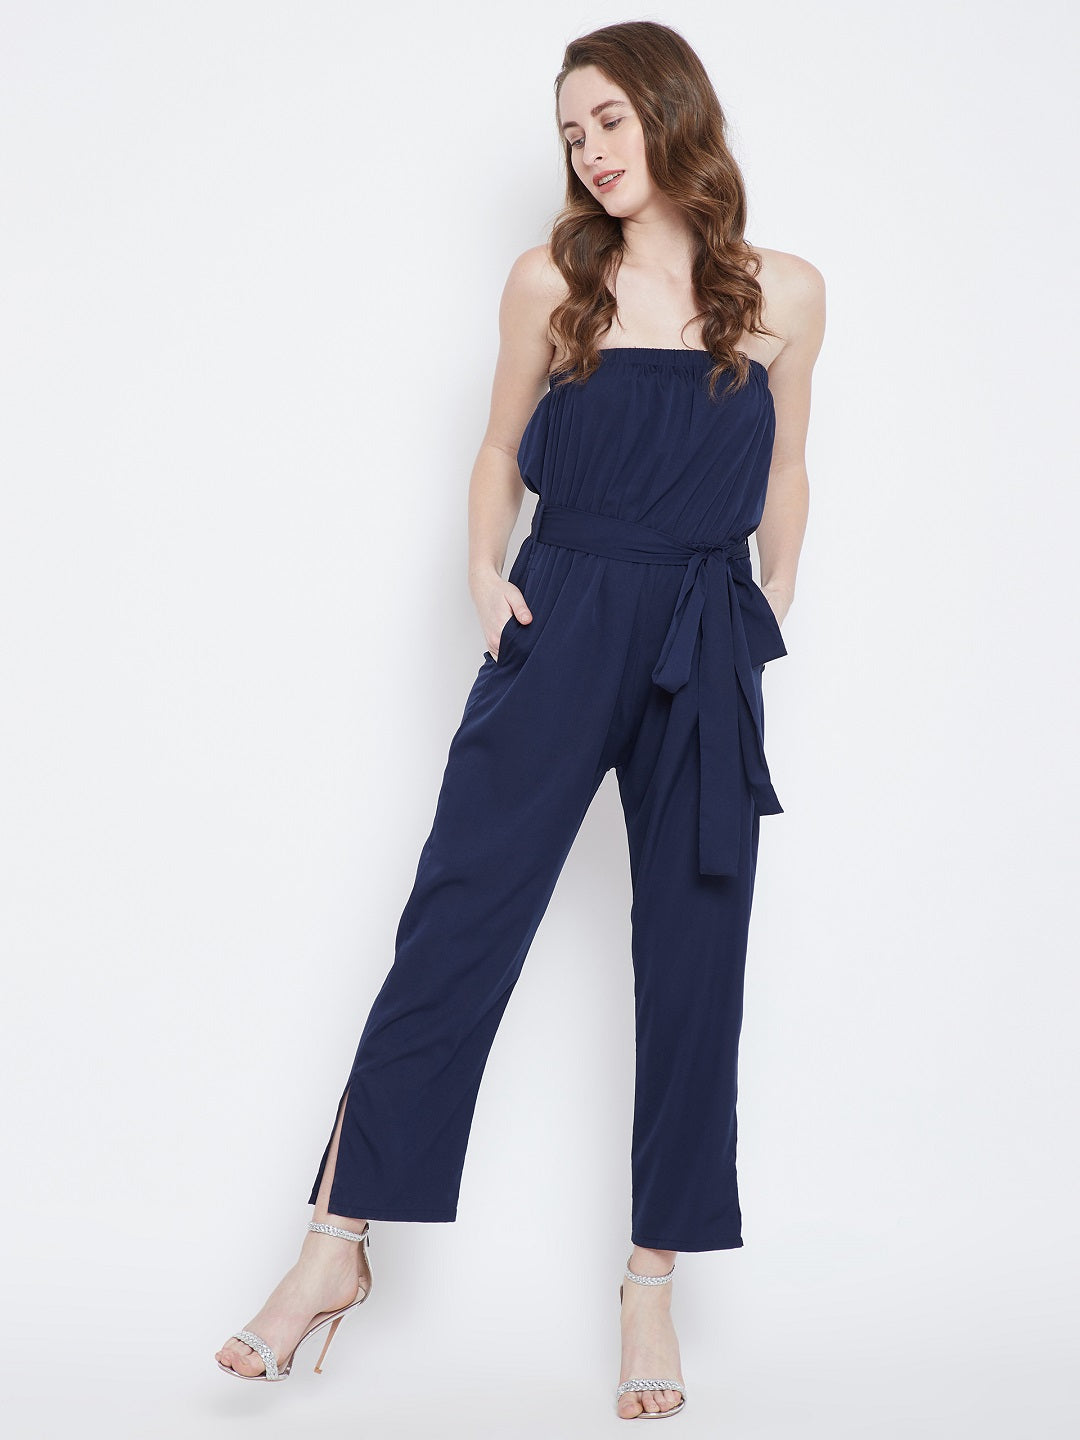 Berrylush Women Navy Blue Solid Jumpsuit